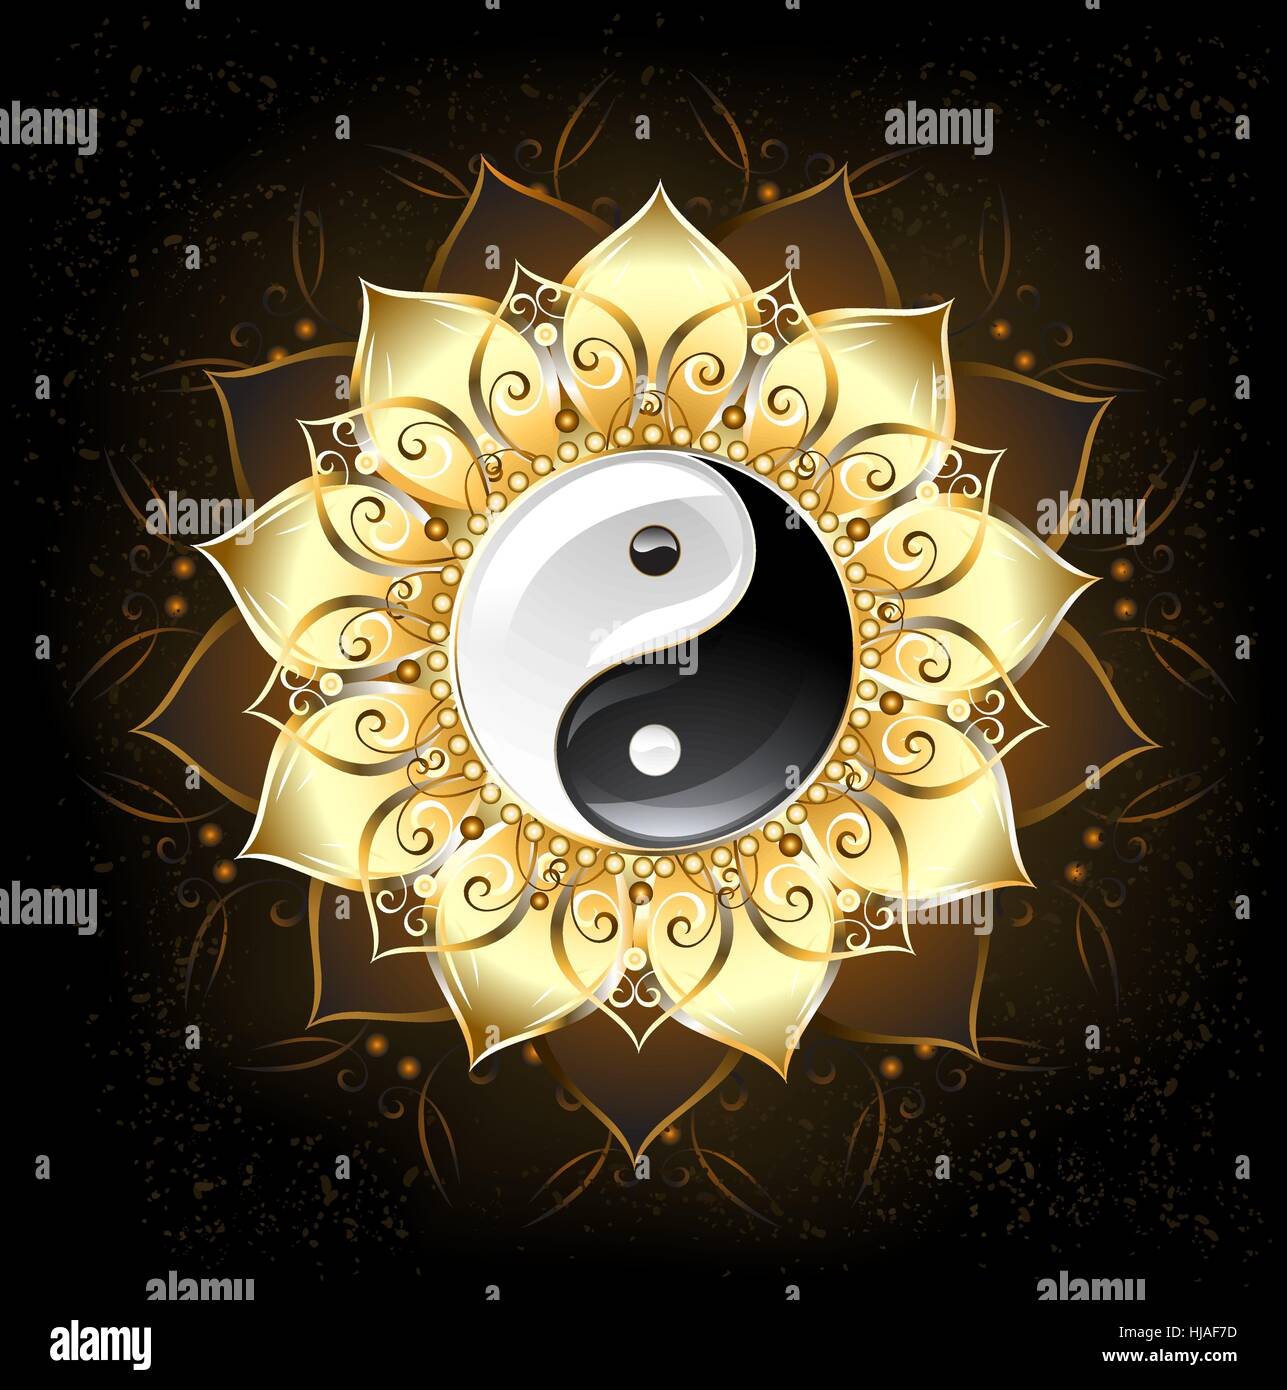 Yin Yang Symbol Drawn In The Middle Of A Lotus With Golden Petals